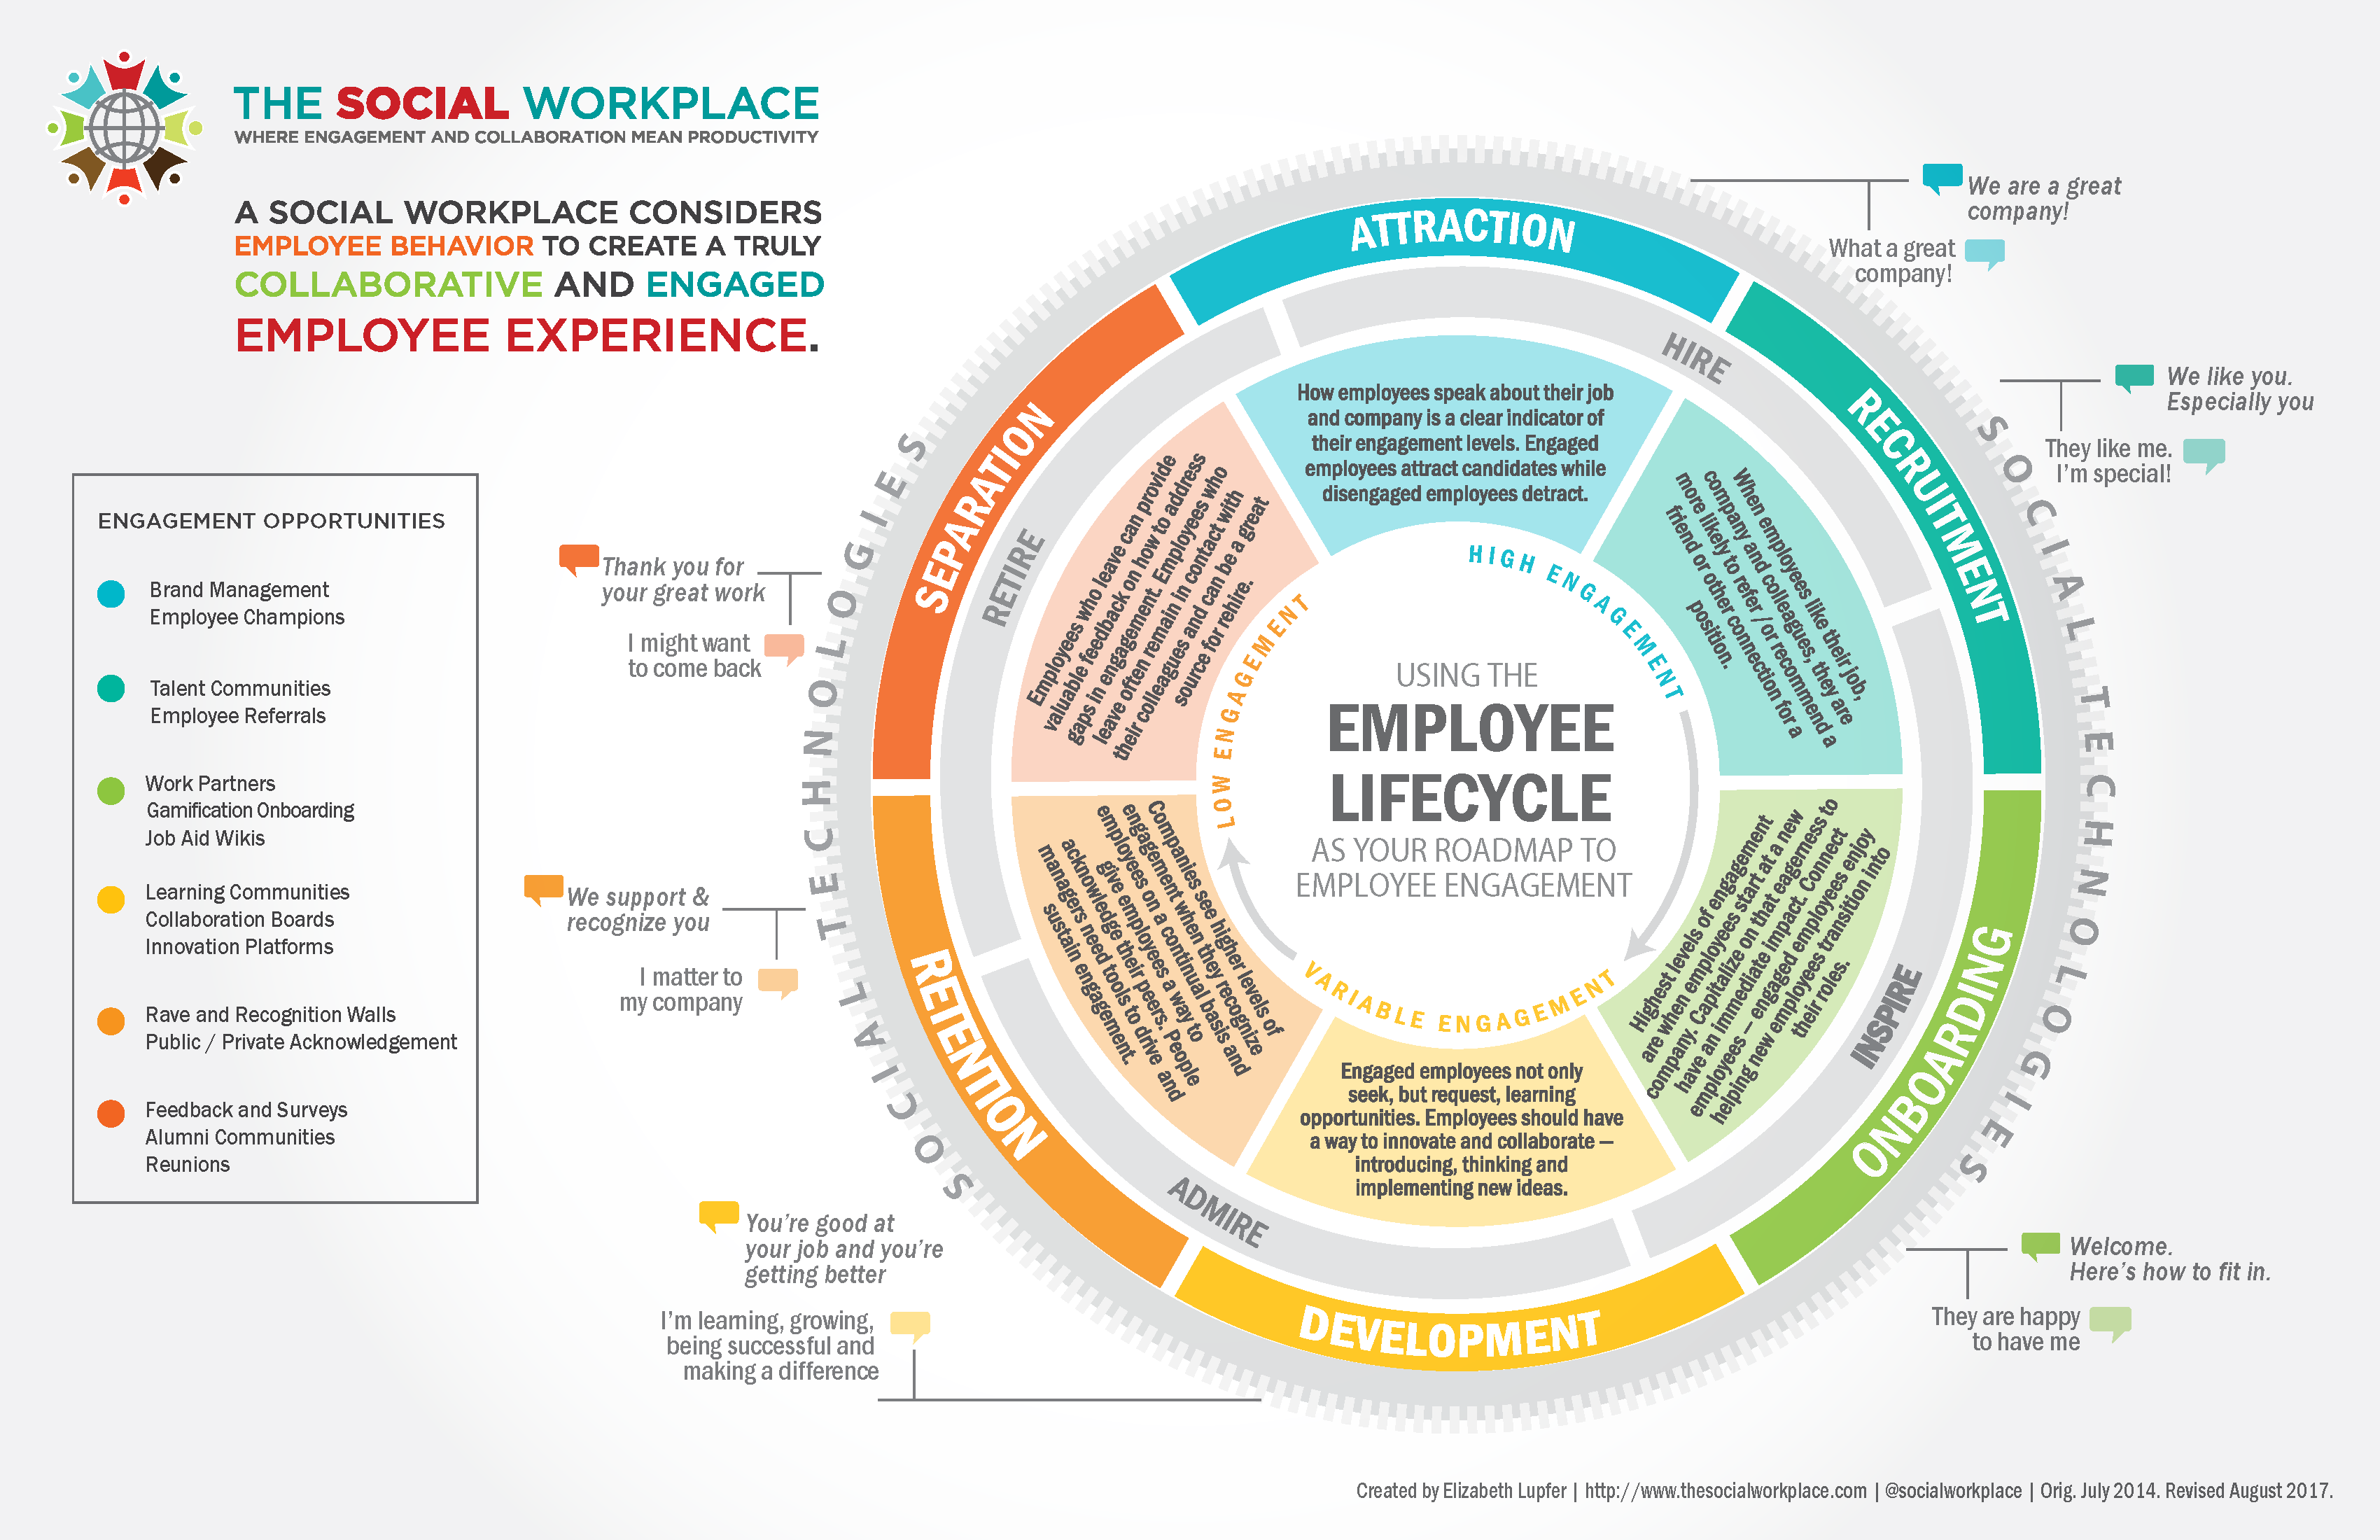 The Employee Lifecycle Is Your Roadmap To Building An Engaged Employee Experience The Social Workplace